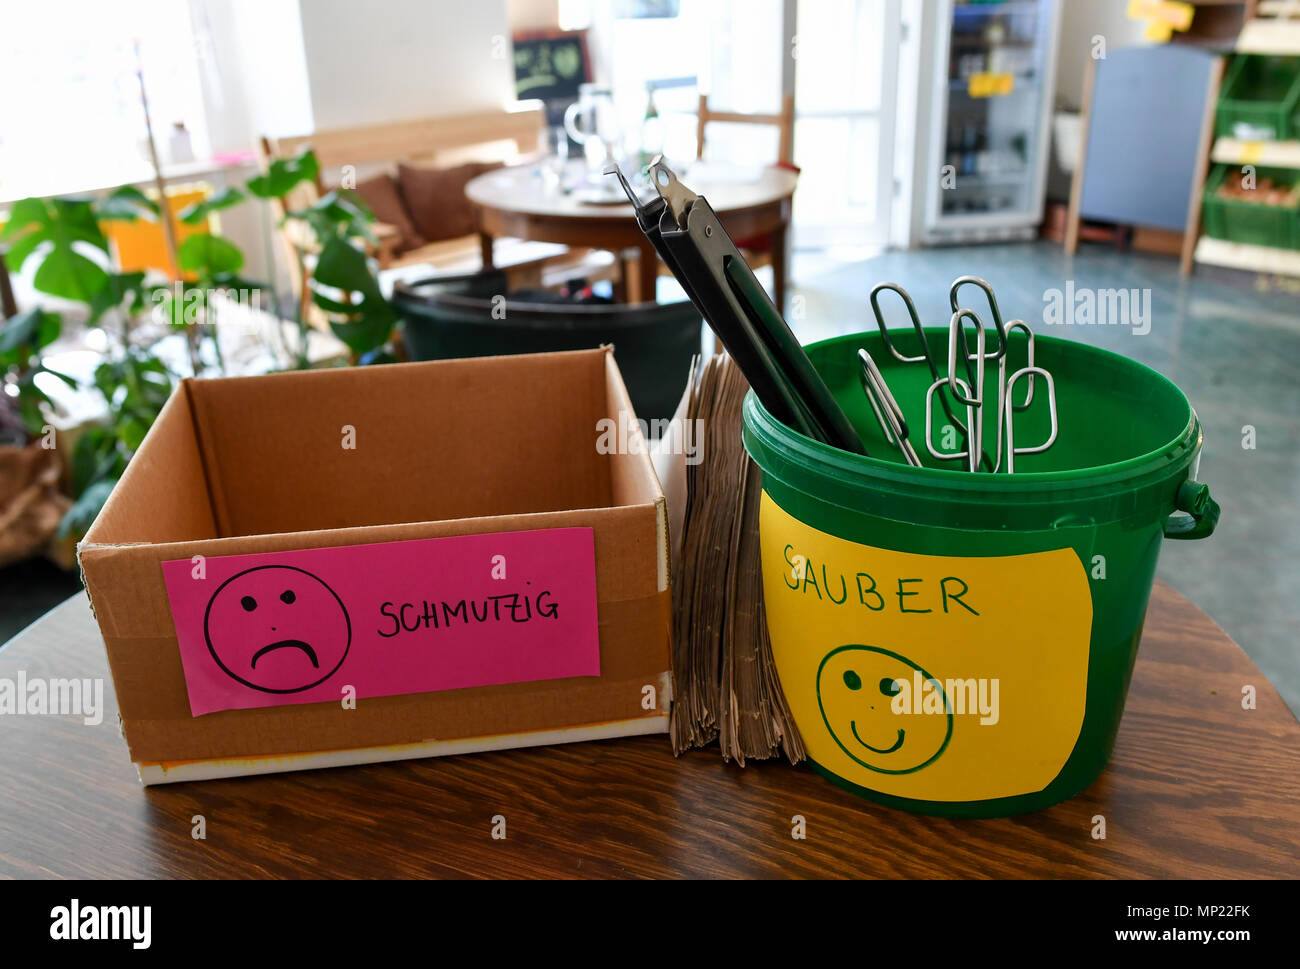 16 May 2018, Germany, Berlin: Two trays for 'schmutzig' (lit. dirty) and 'sauber' (lit. clean) utensils which can be used for bottling the products at the zero waste shop 'Der Sache wegen - einfach richtig einkaufen' (lit. For the cause - simply shop right) at Lychener Strasse in the district of Prenzlauber Berg. The shop sells food and household goods like detergents and soap. The products are free of plastic, free of palm-oil, organic, regional, fair, conscious and no animals suffer for them or comply with the current ecological alternative. Food is being sold in reusable containers and fill - Stock Image